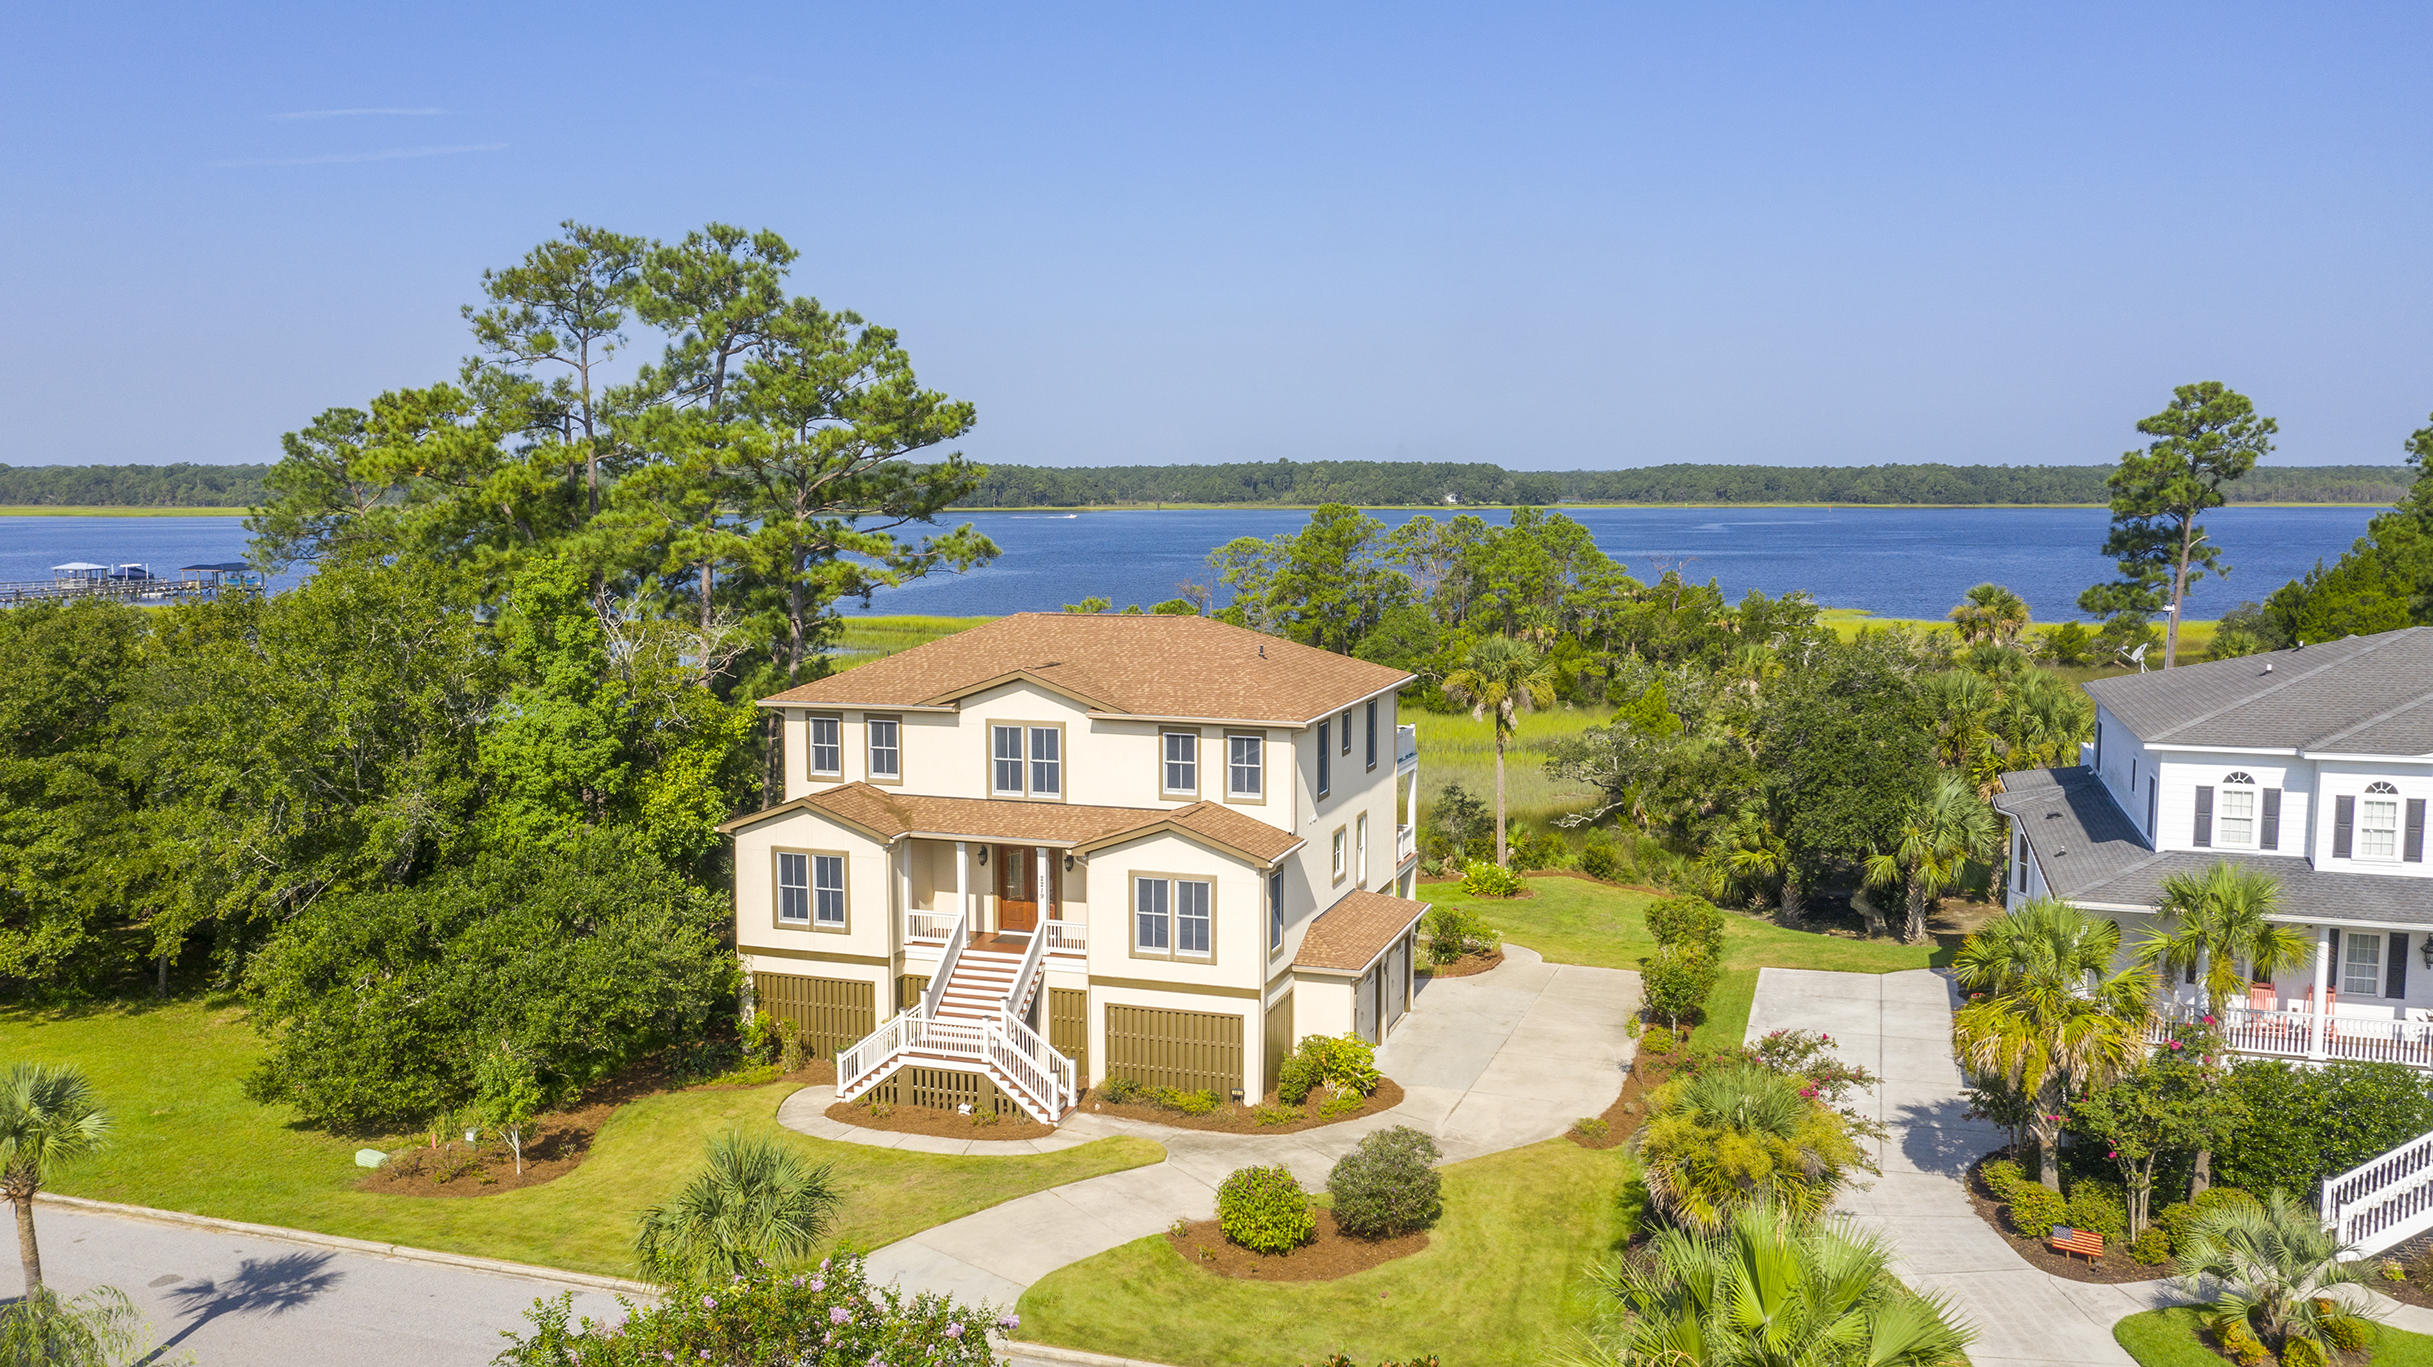 Rivertowne On The Wando Homes For Sale - 2219 Marsh, Mount Pleasant, SC - 27